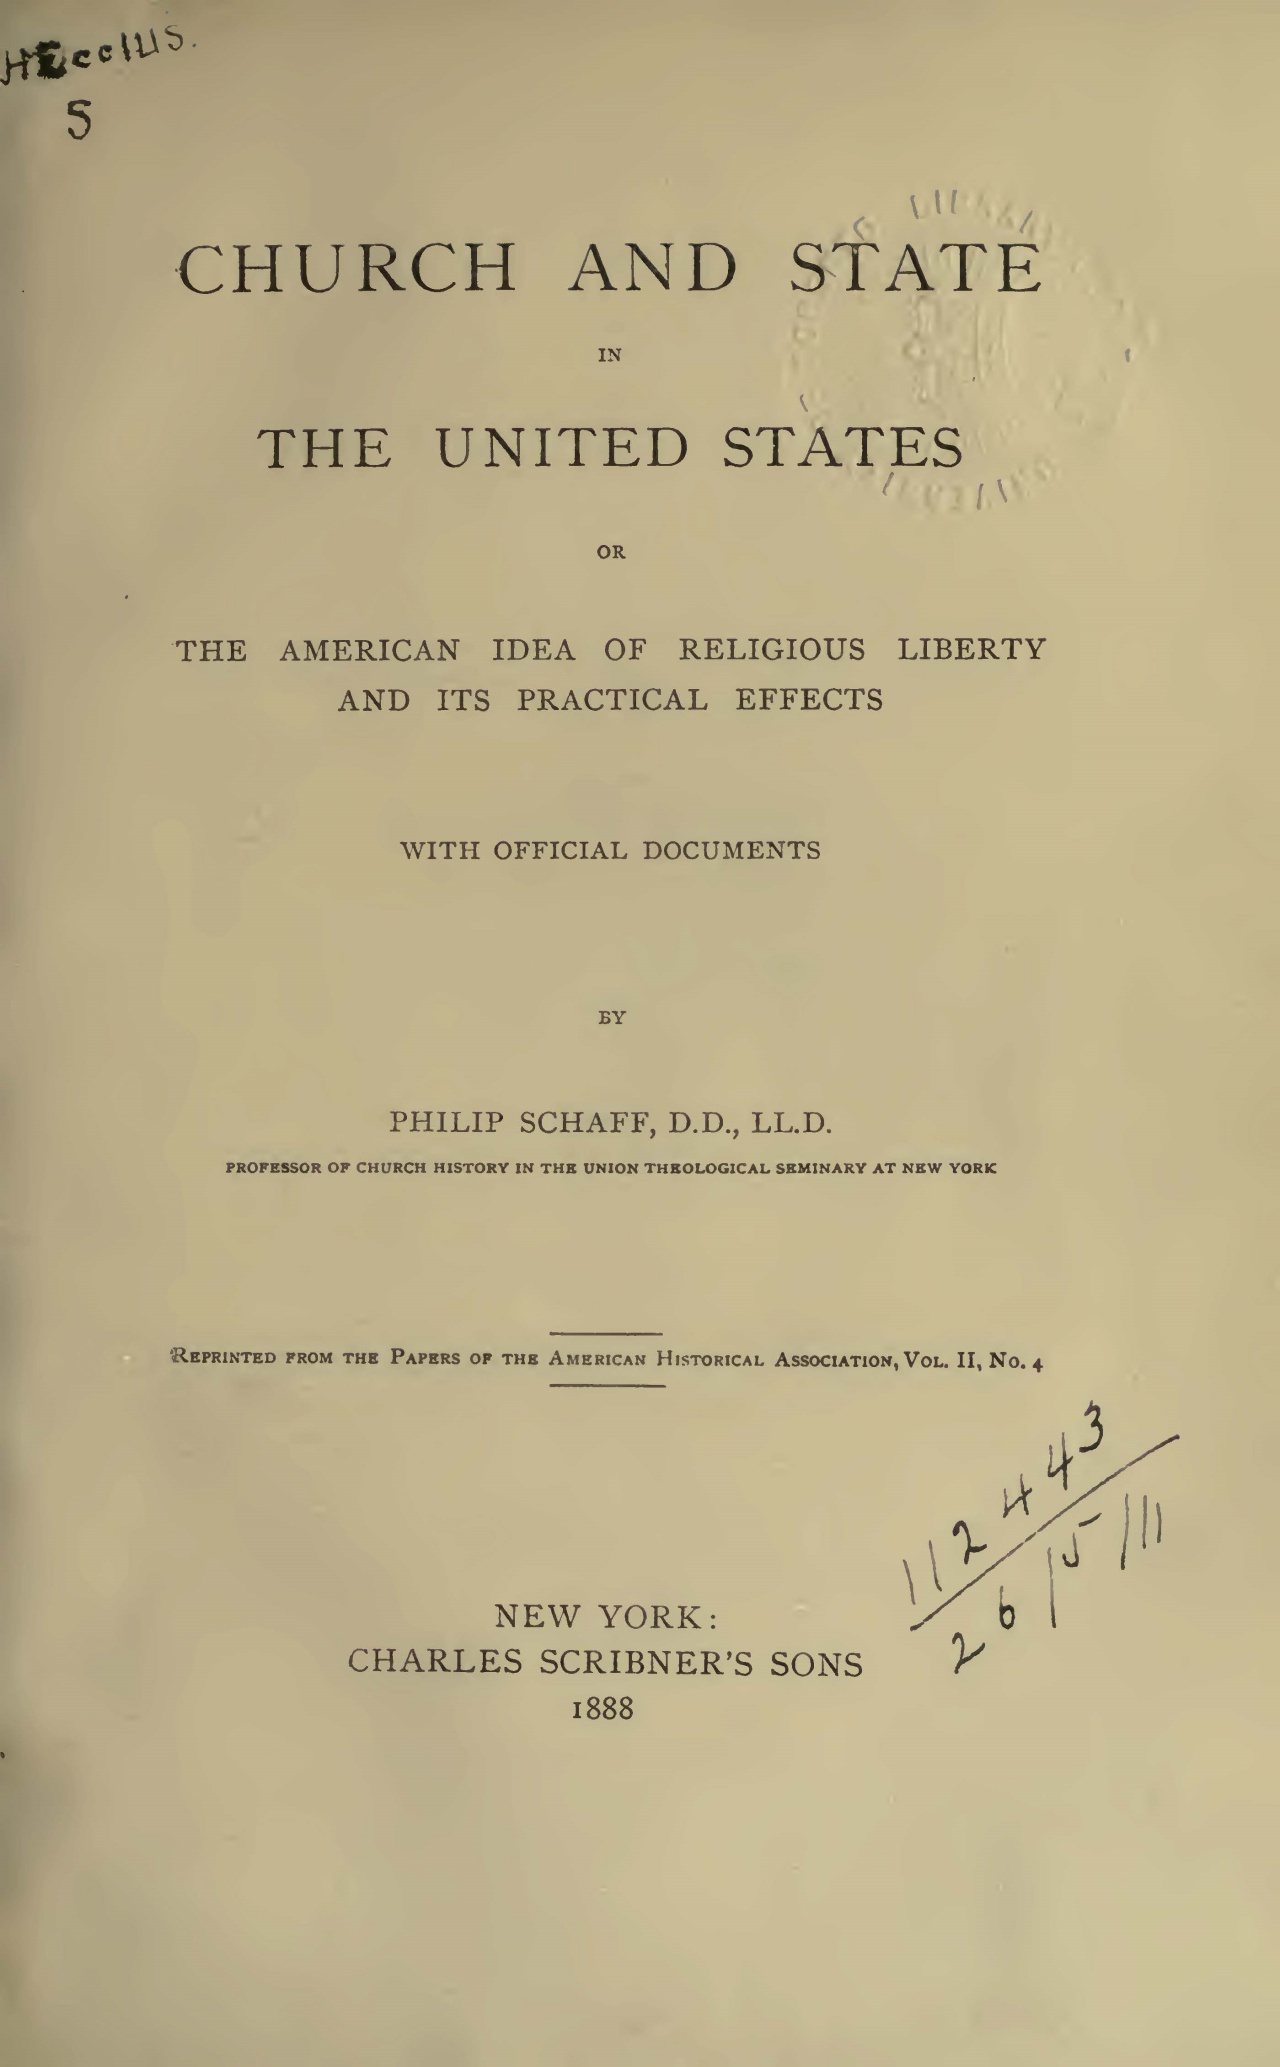 Schaff, Philip, Church and State in the United States Title Page.jpg